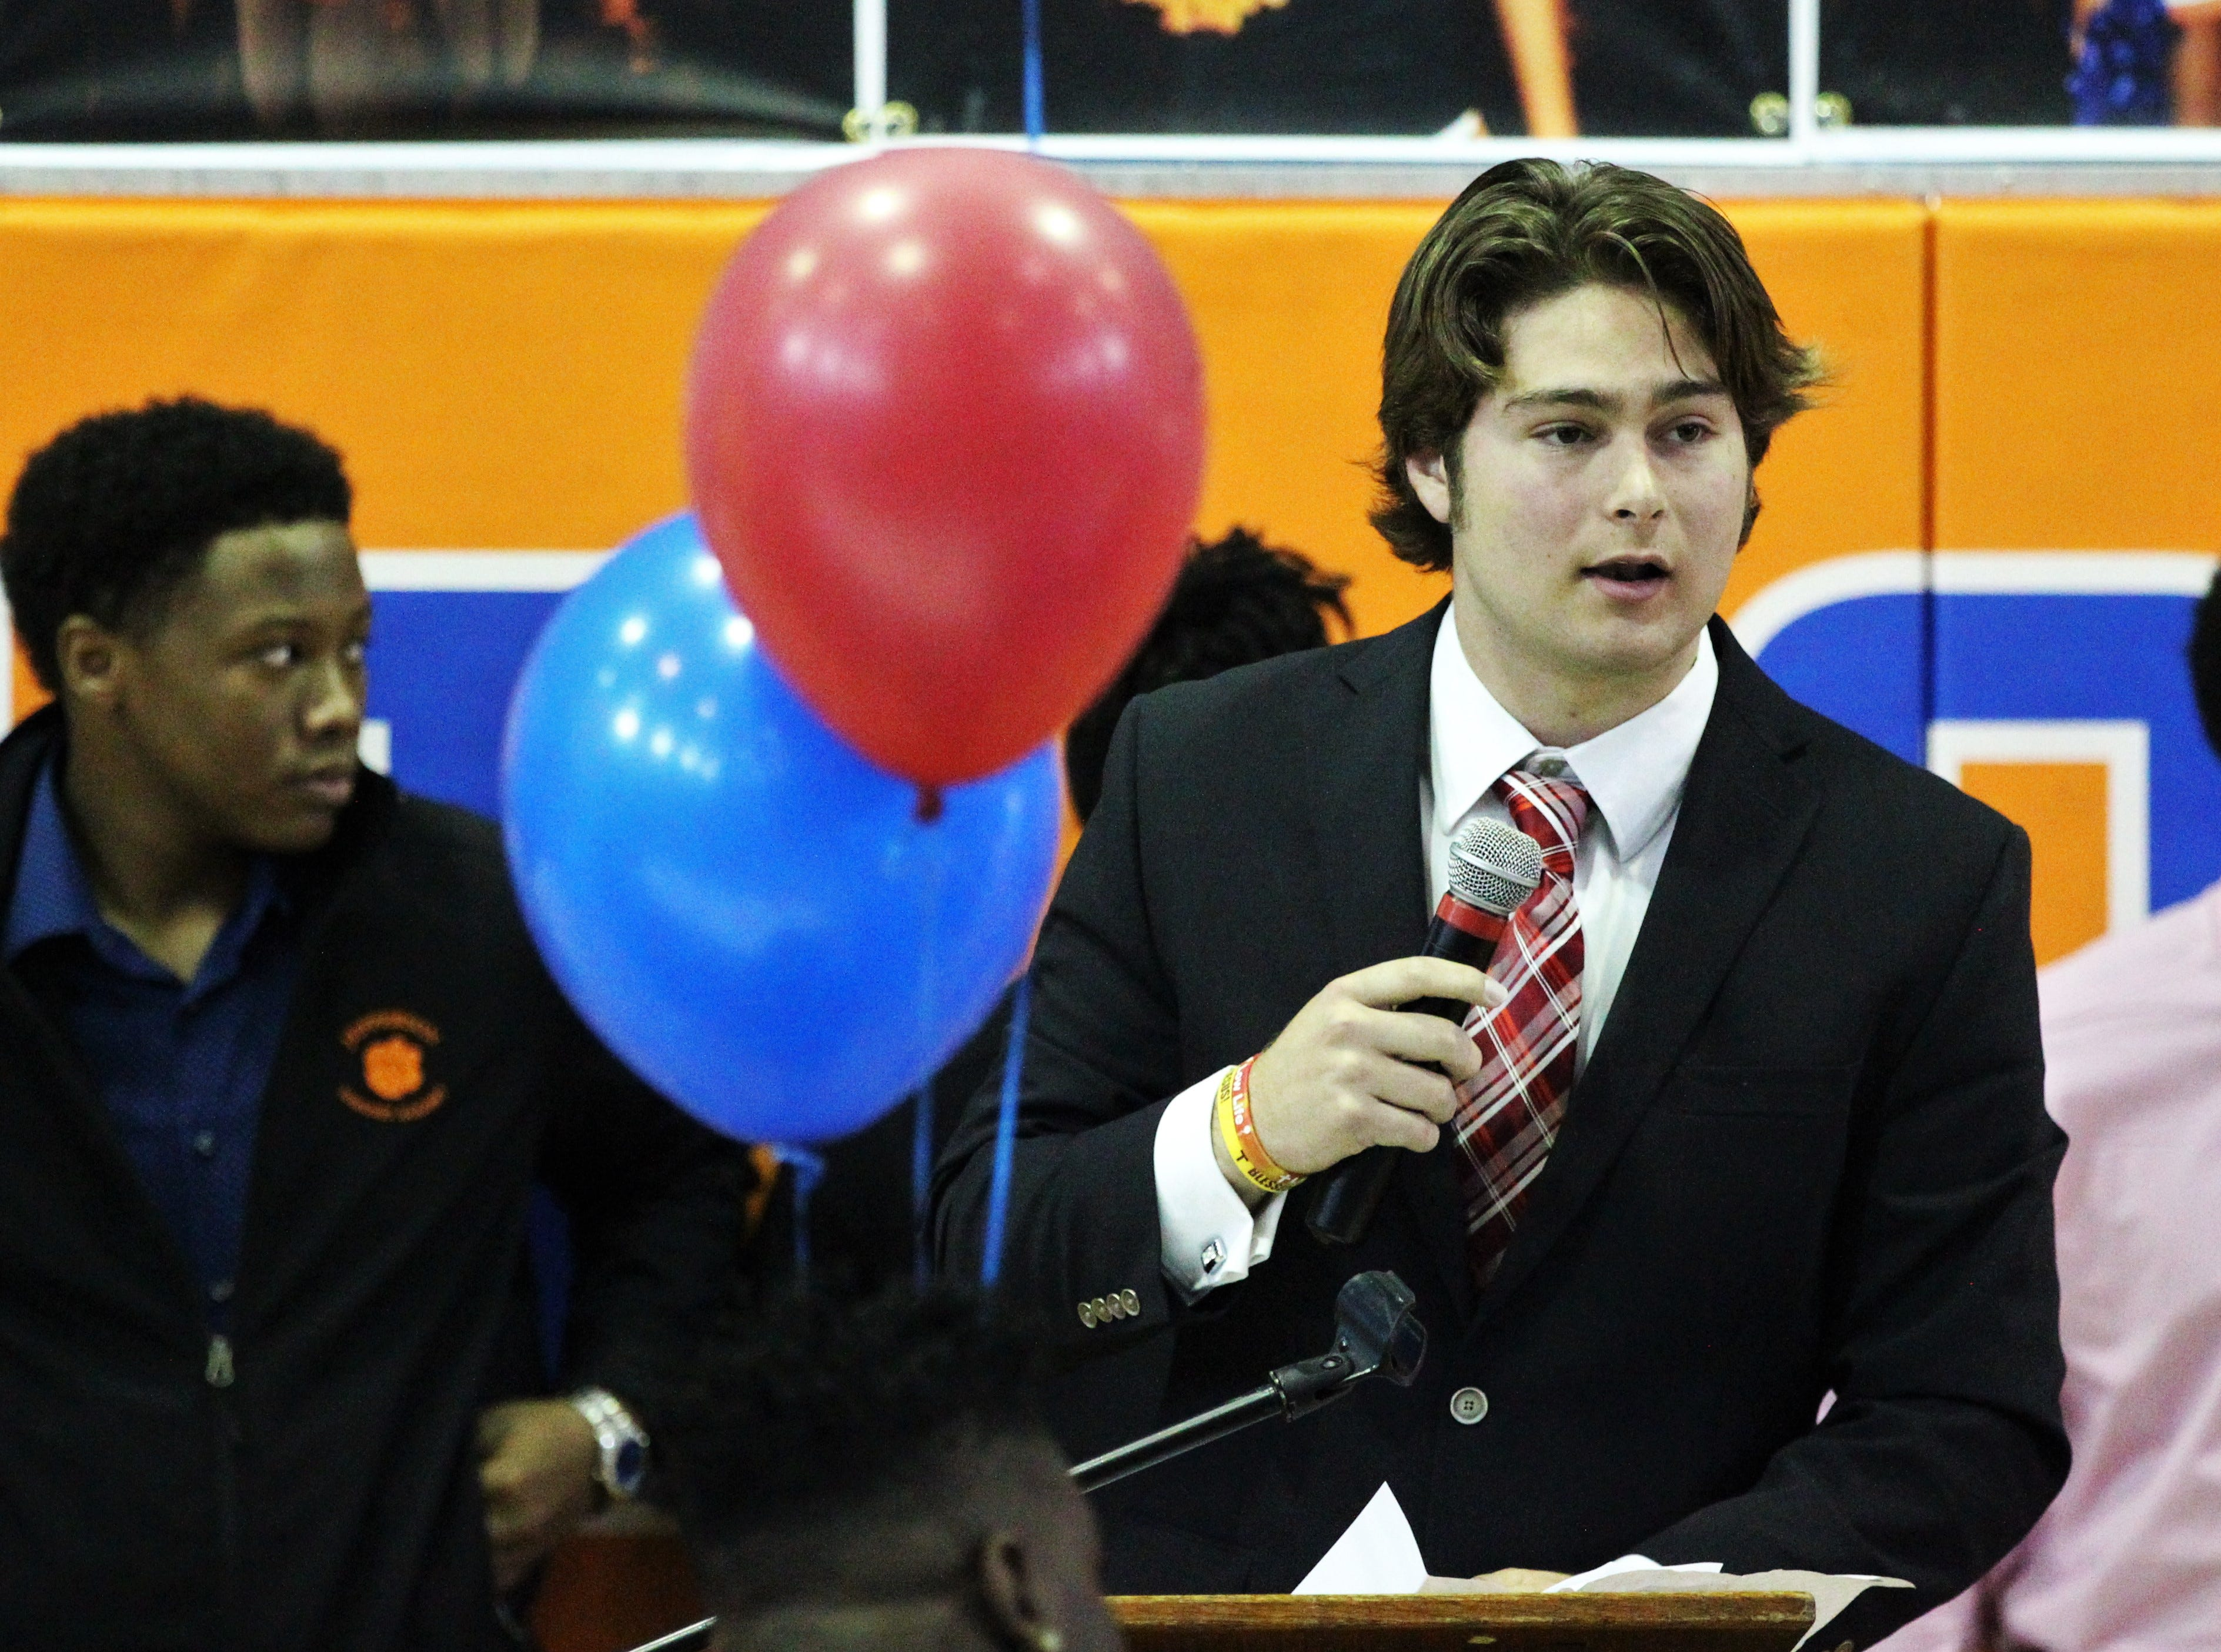 Jefferson County quarterback Josh Aiken, who signed with Huntingdon College, speaks during Jefferson County's signing day ceremony on Feb. 13, 2019.